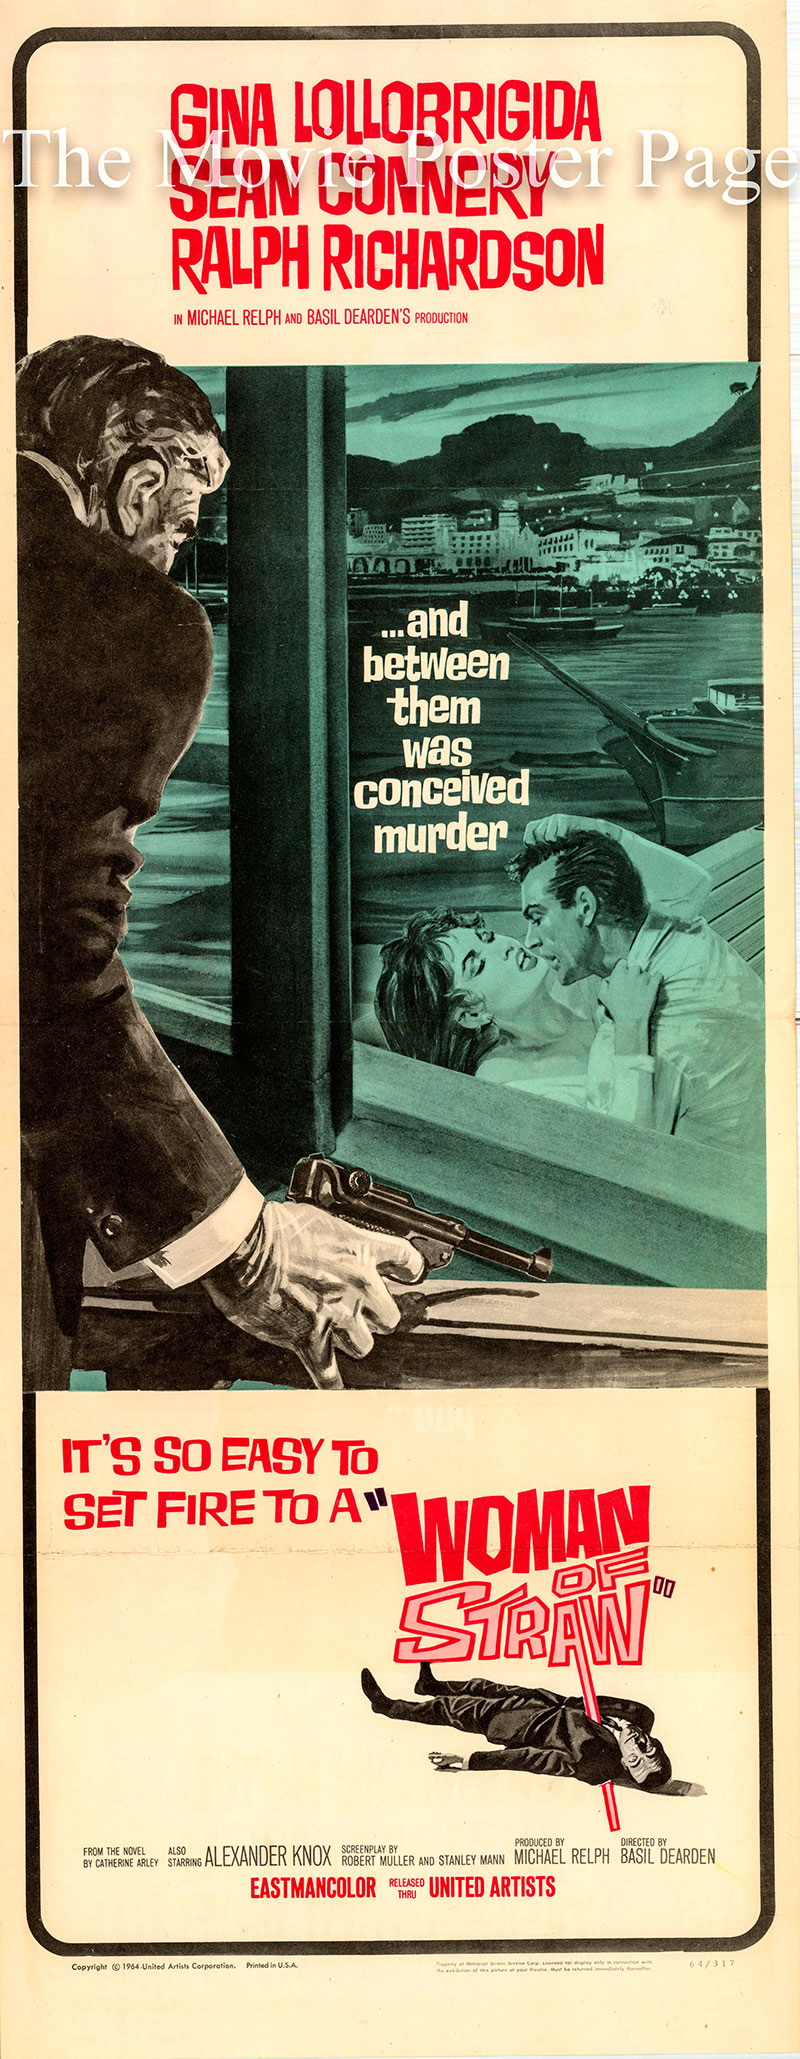 Pictured is a US insert poster for the 1964 Basis Dearden film Woman of Straw starring Sean Connery.